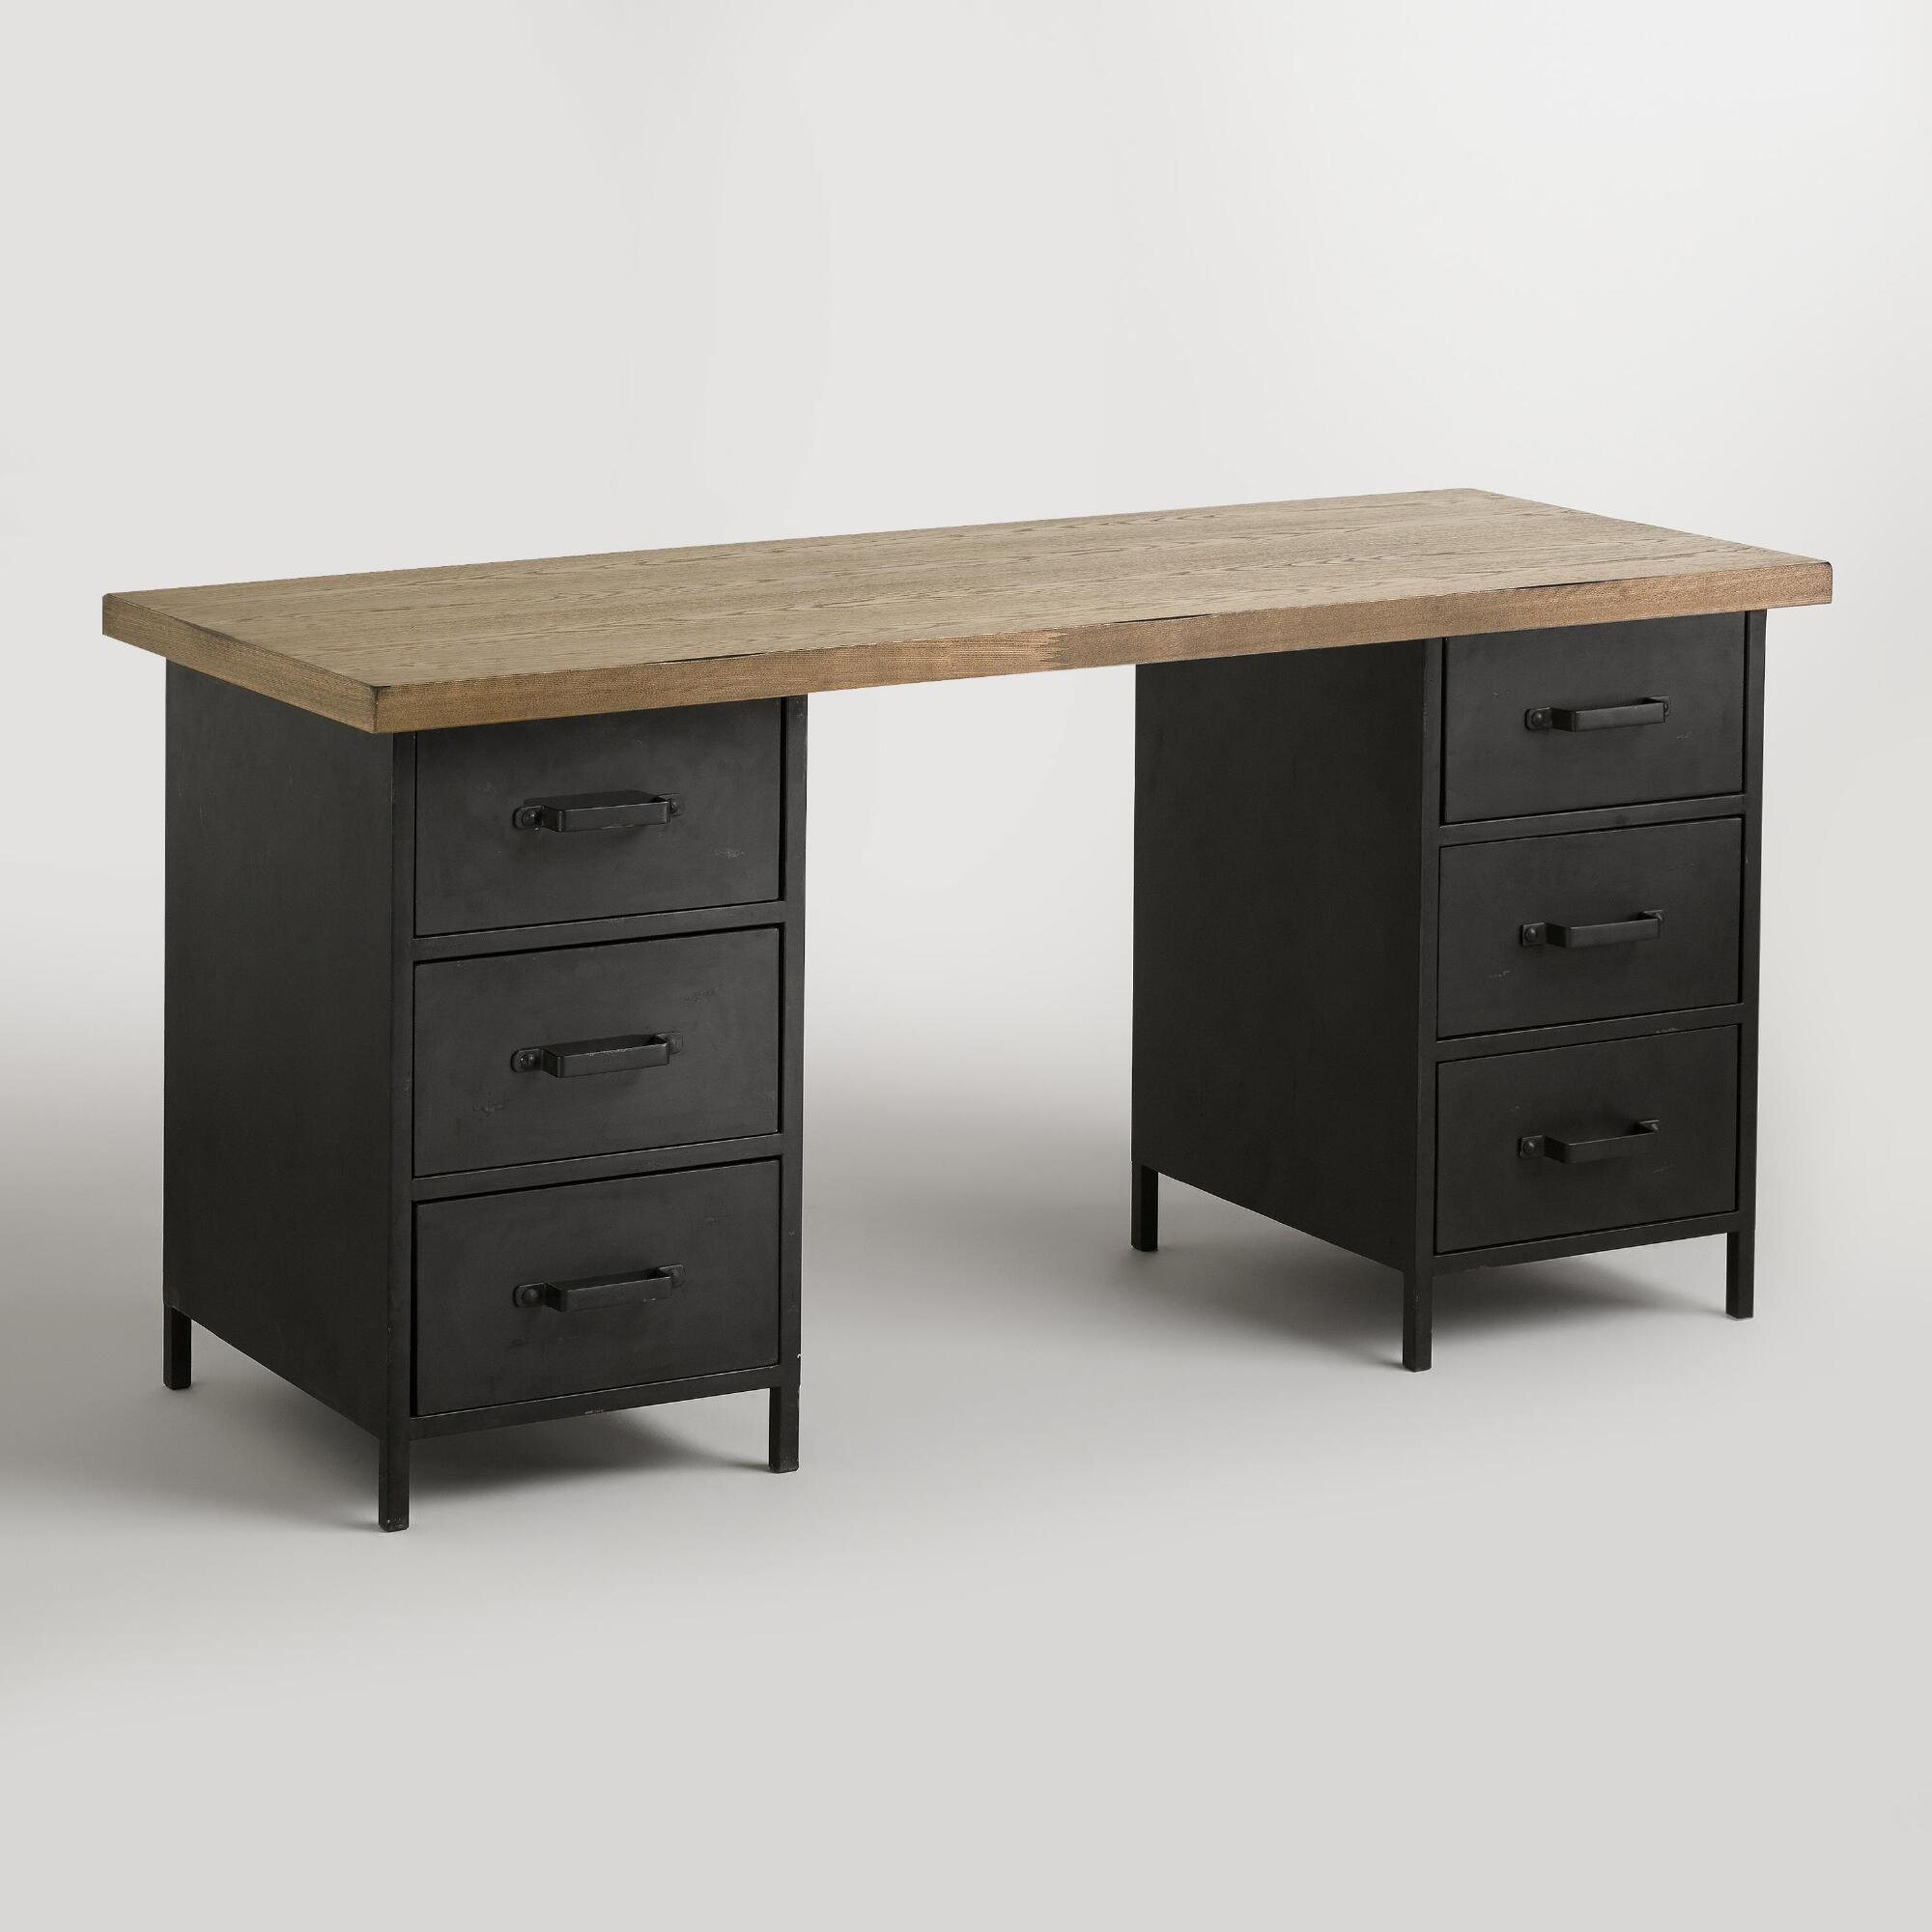 with for desk get drawers inspired drawer and office perfect search storage ideas design the wood in modern